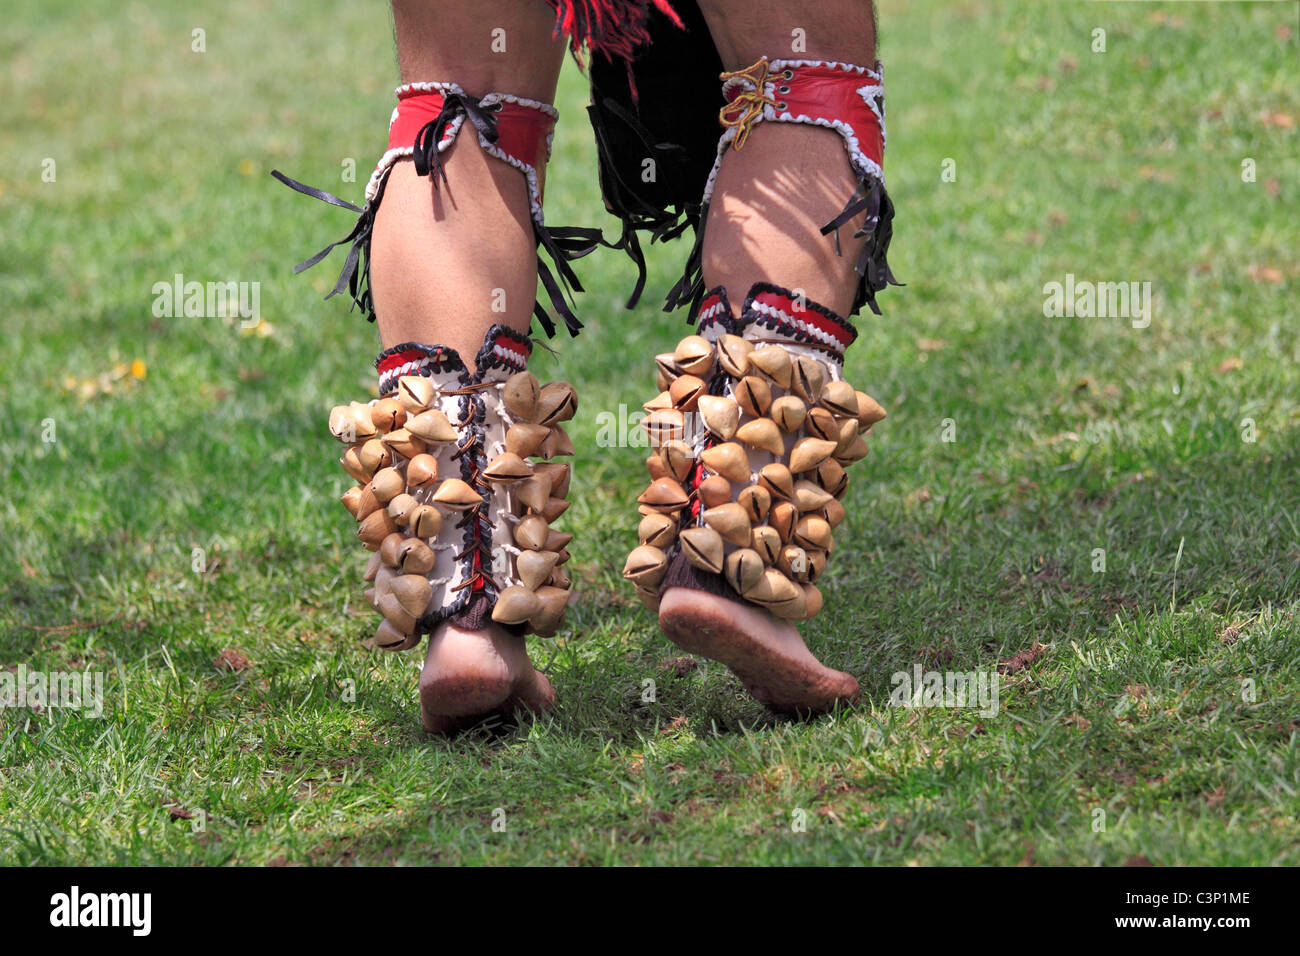 Shells on ankles of native american dancer, Long Island, NY